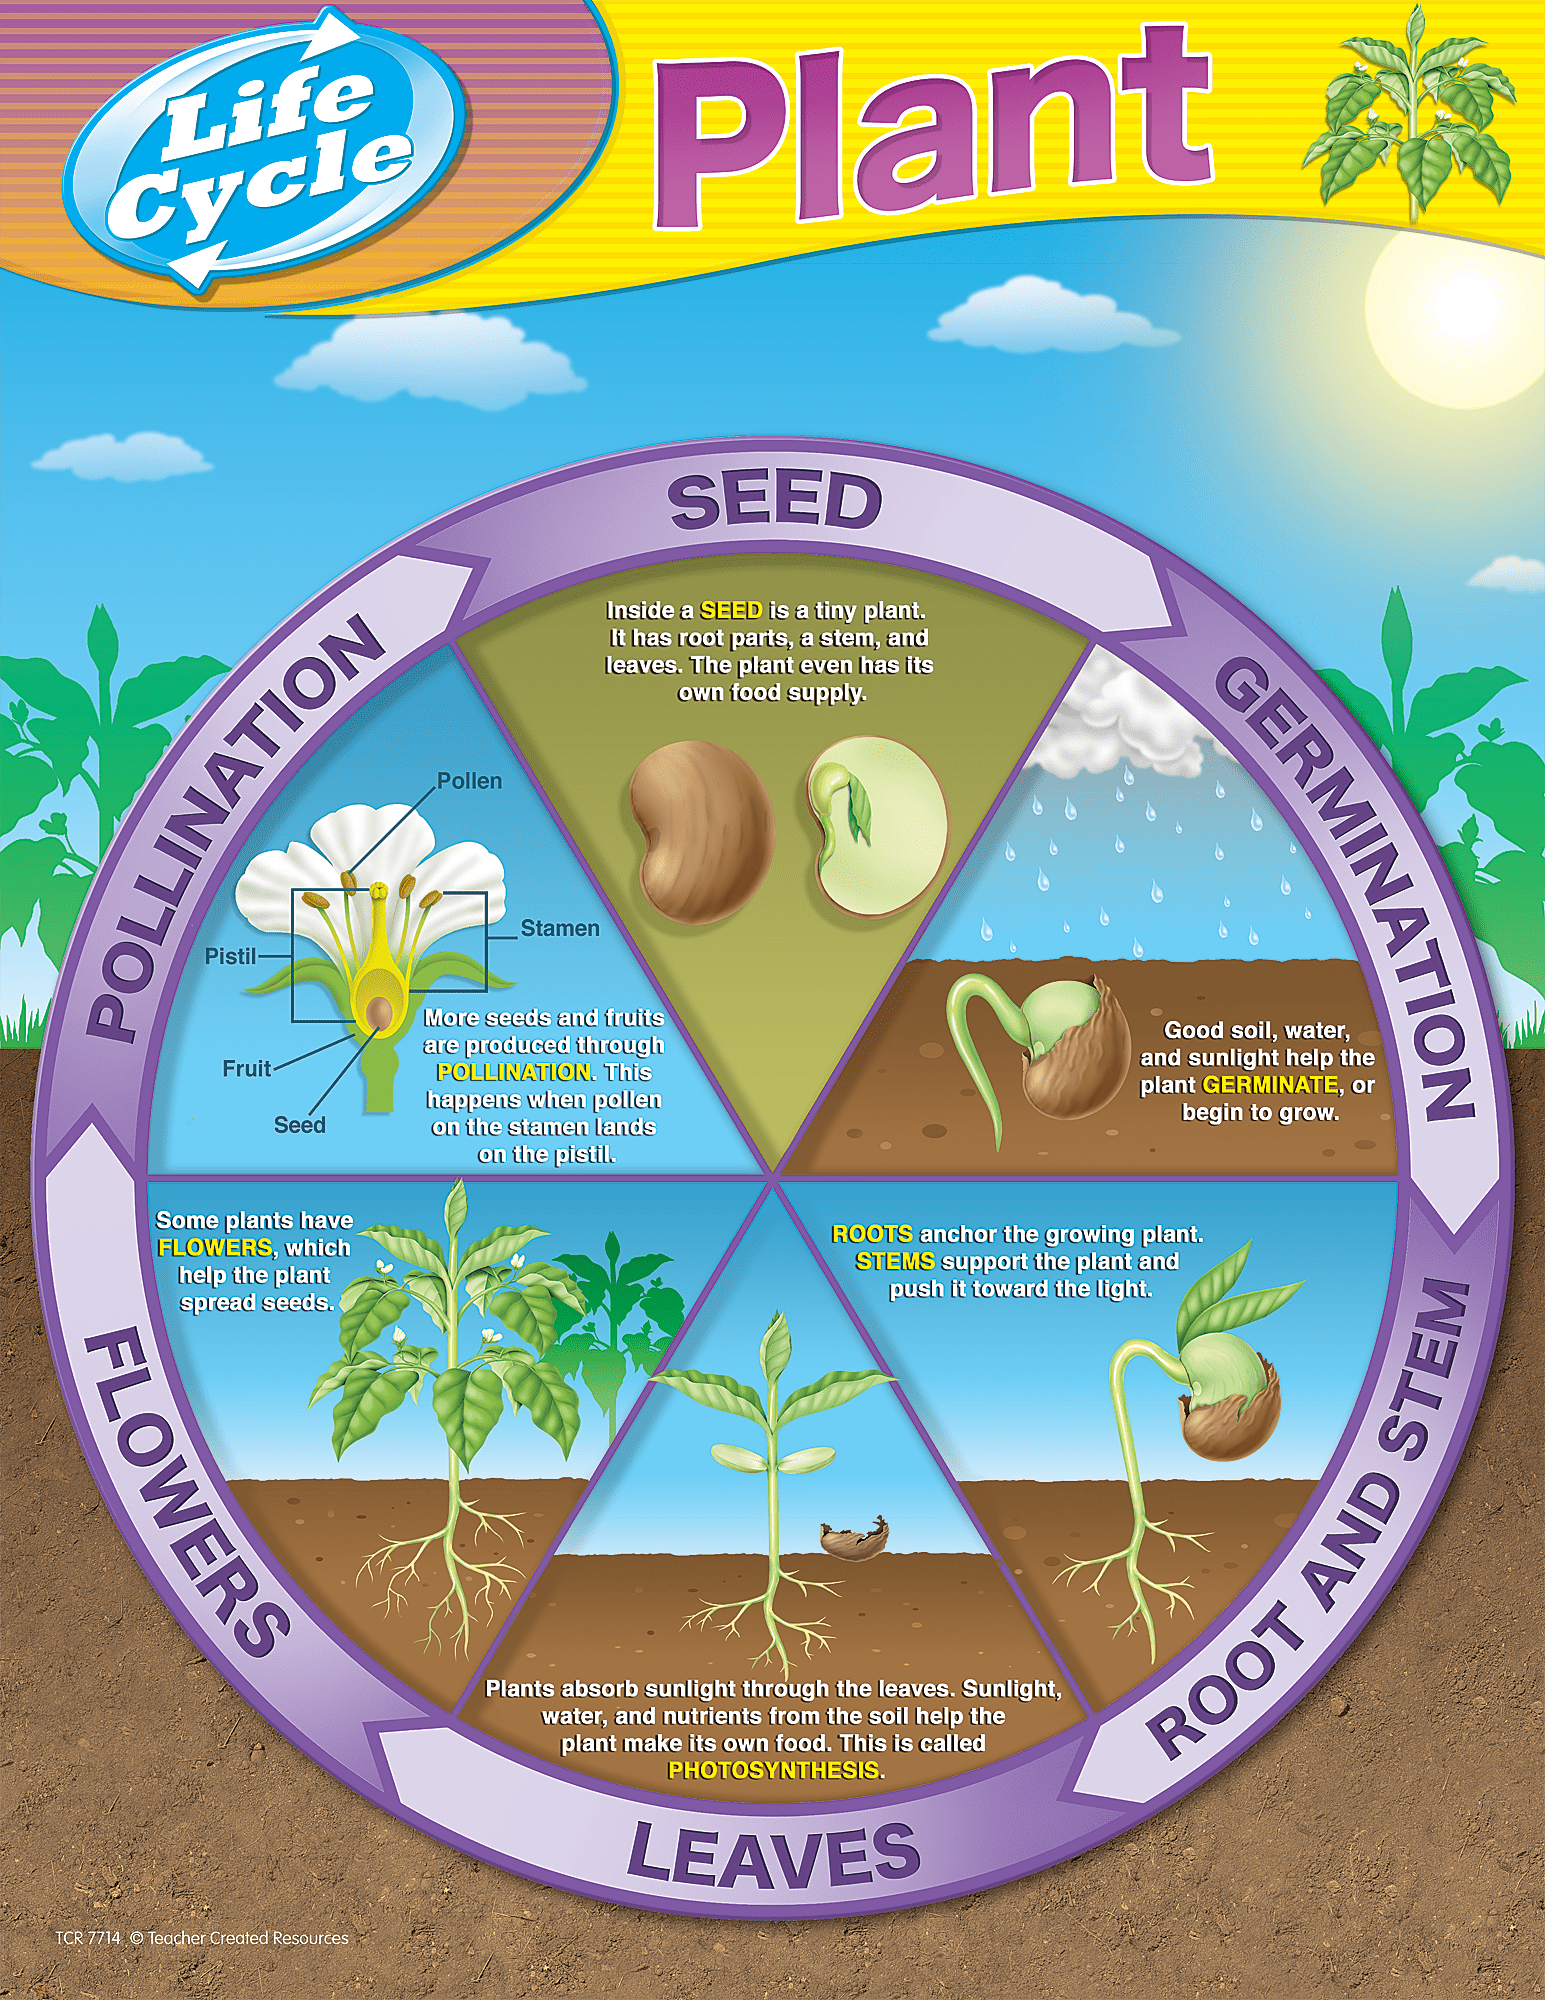 sunflower plant life cycle diagram ford fiesta wiring 2009 cycles chart tcr7714 teacher created resources